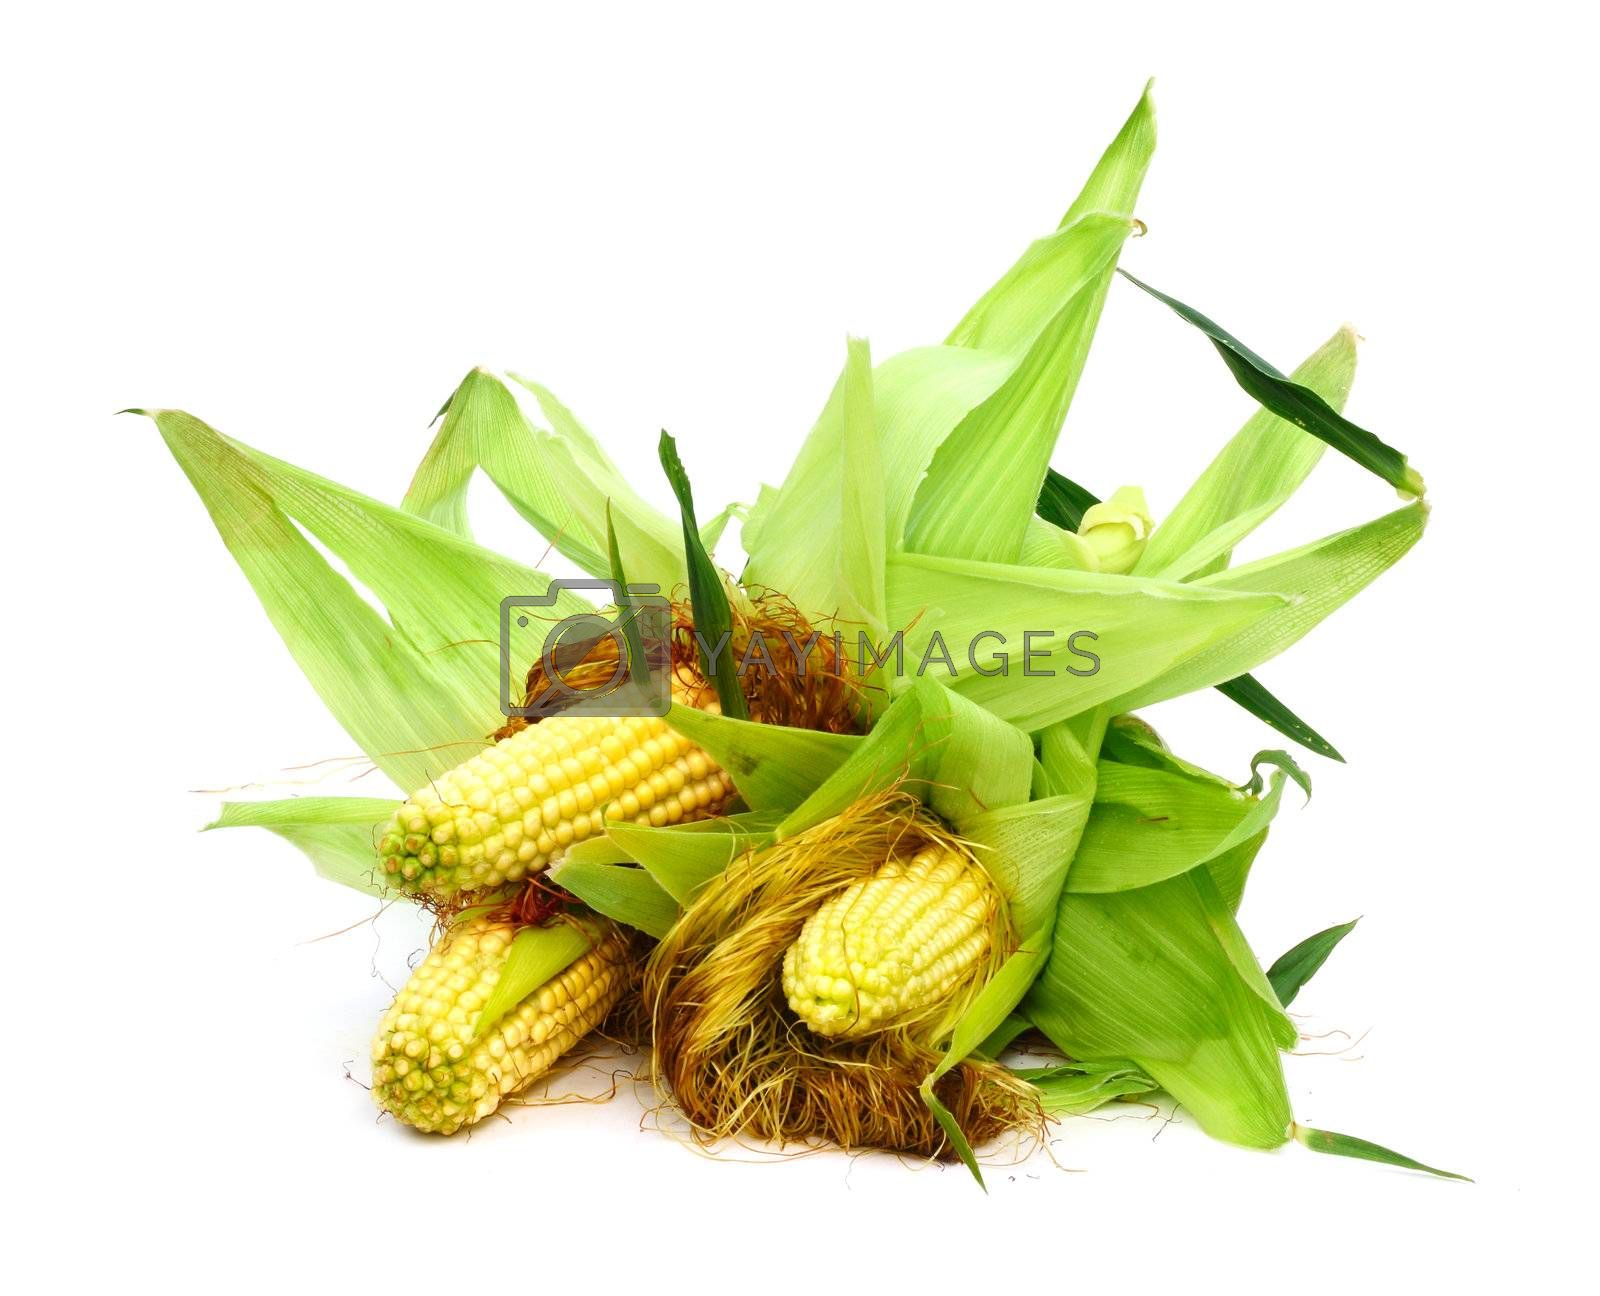 Three ears of corn isolated on a white background